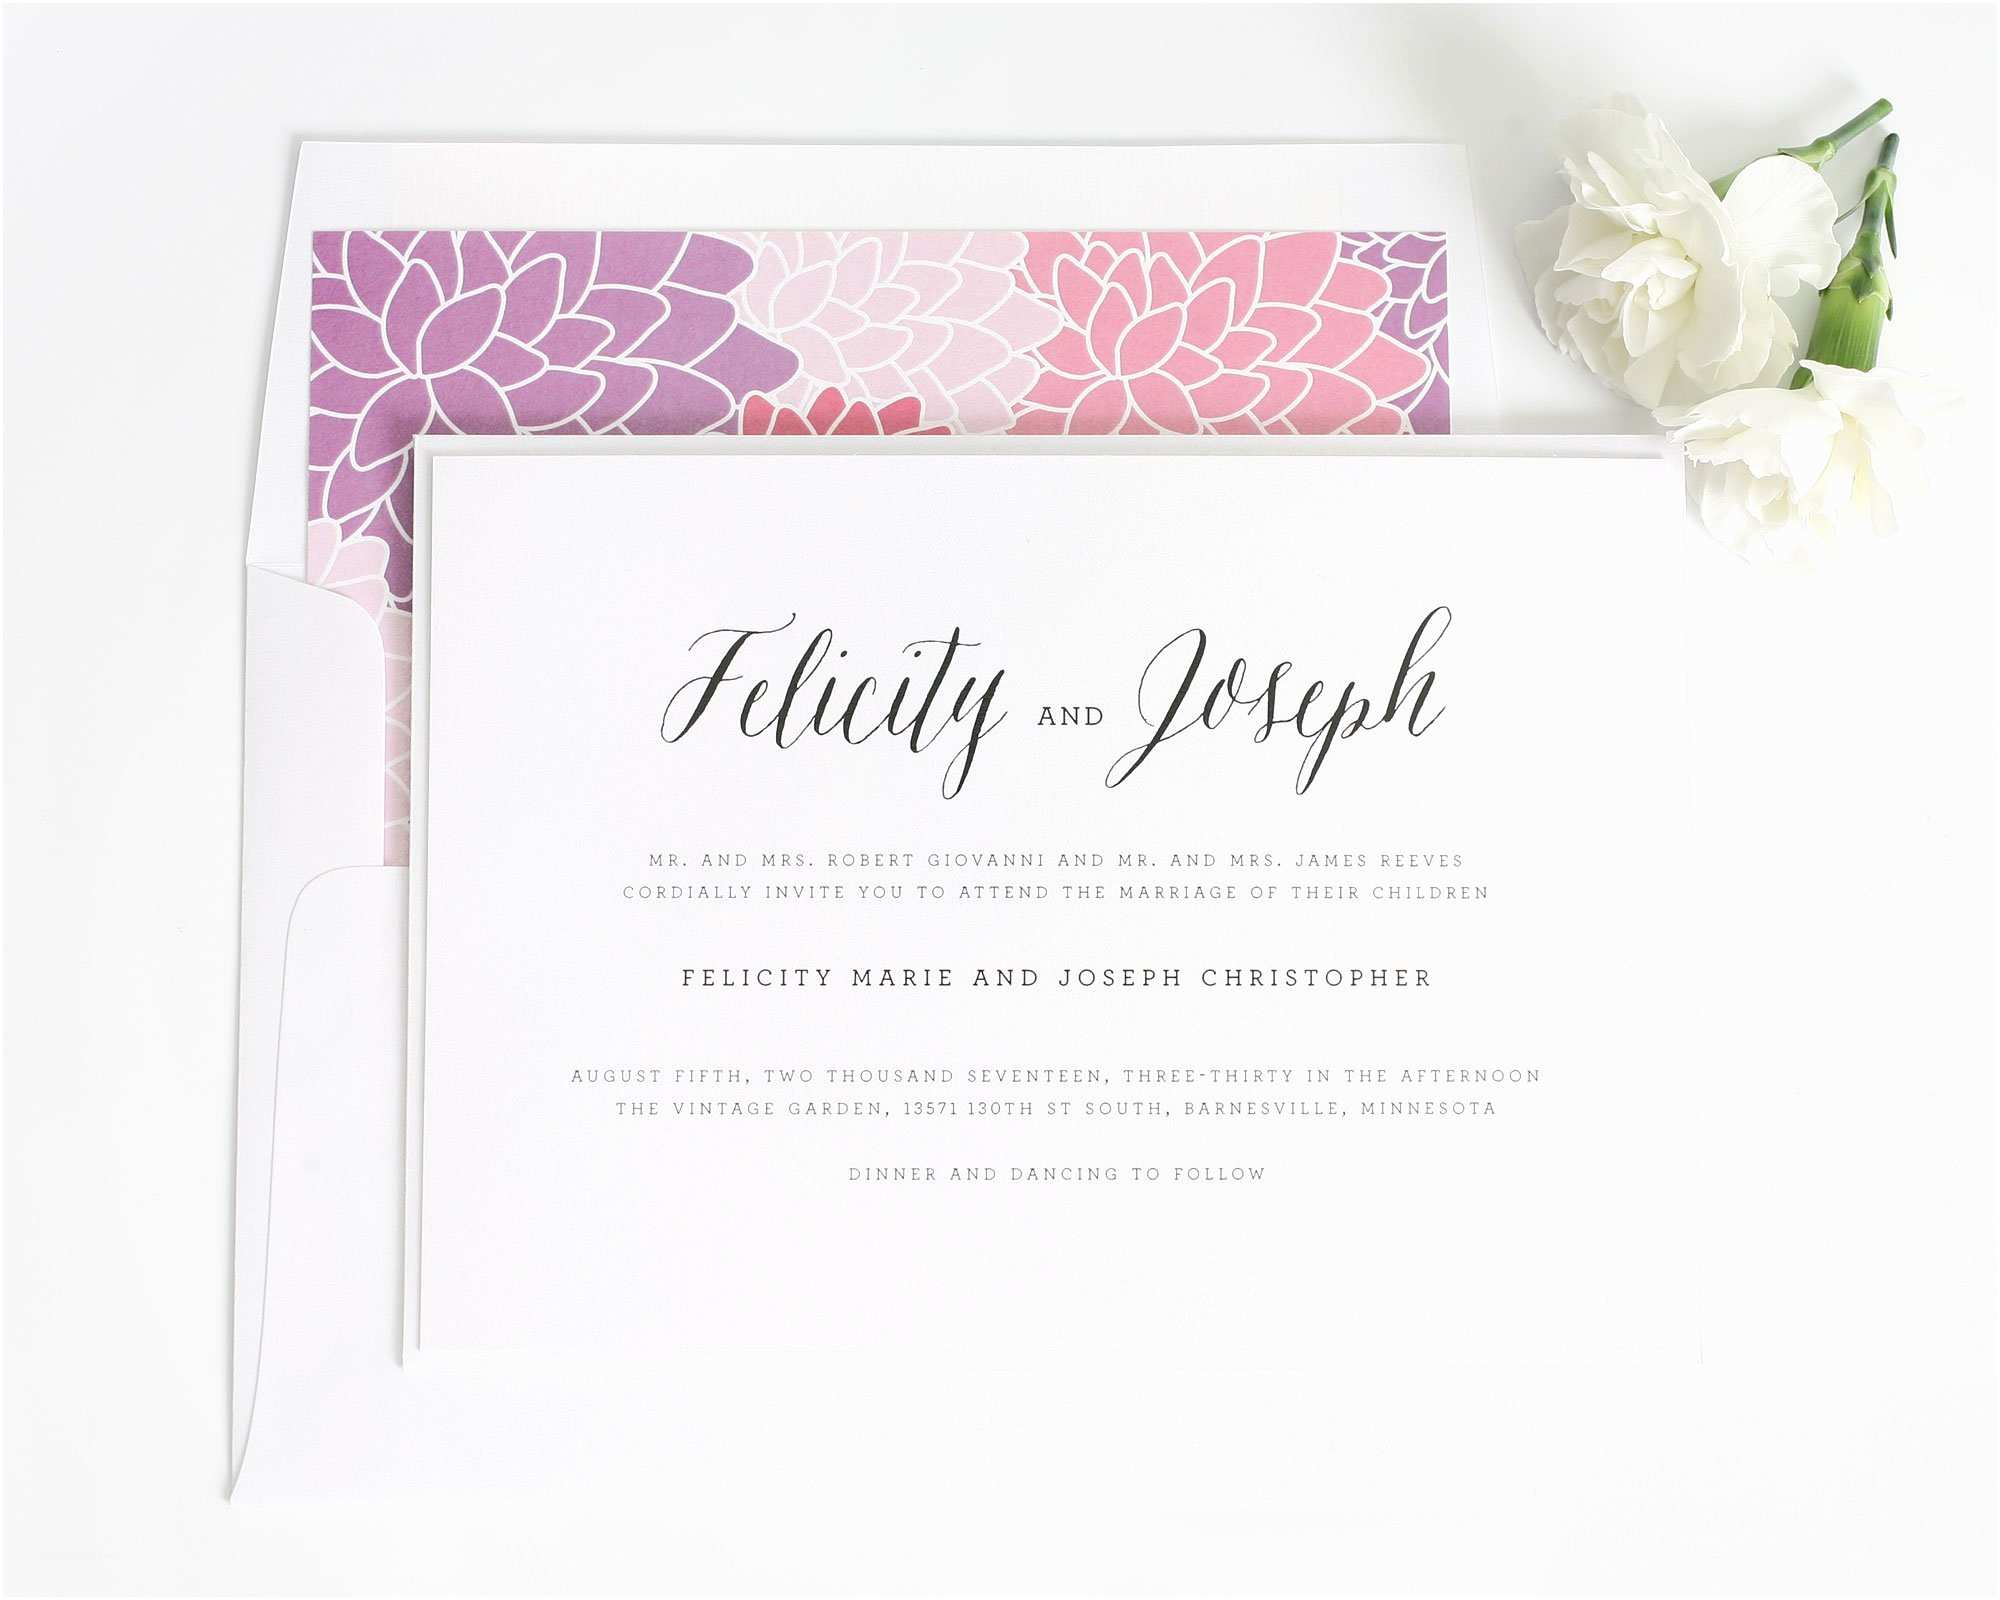 Truly Romantic Wedding Invitations Whimsical Rustic Romance Wedding Invitation with Floral